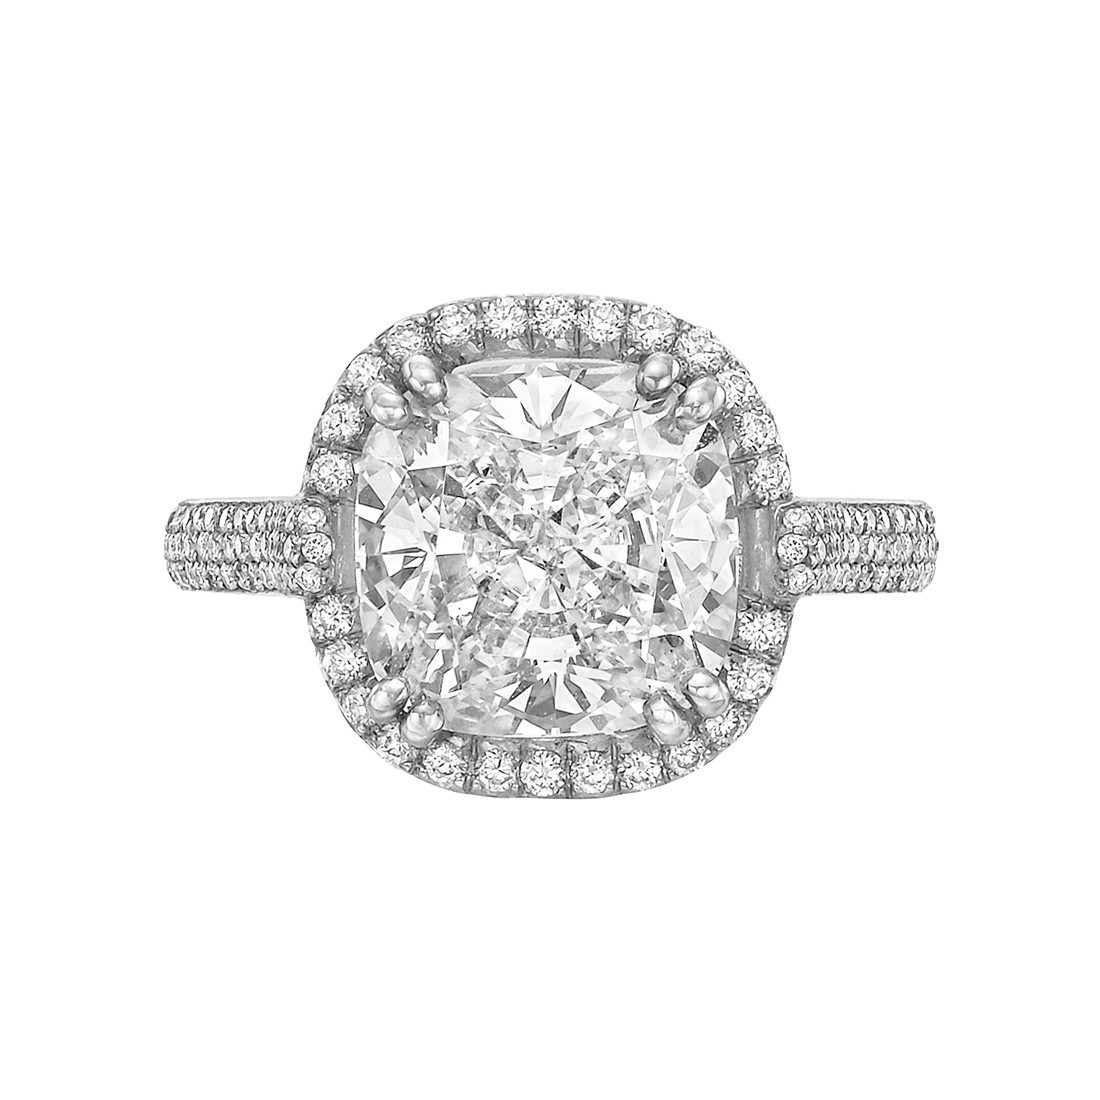 4.20ct Cushion-Cut Diamond Halo Ring